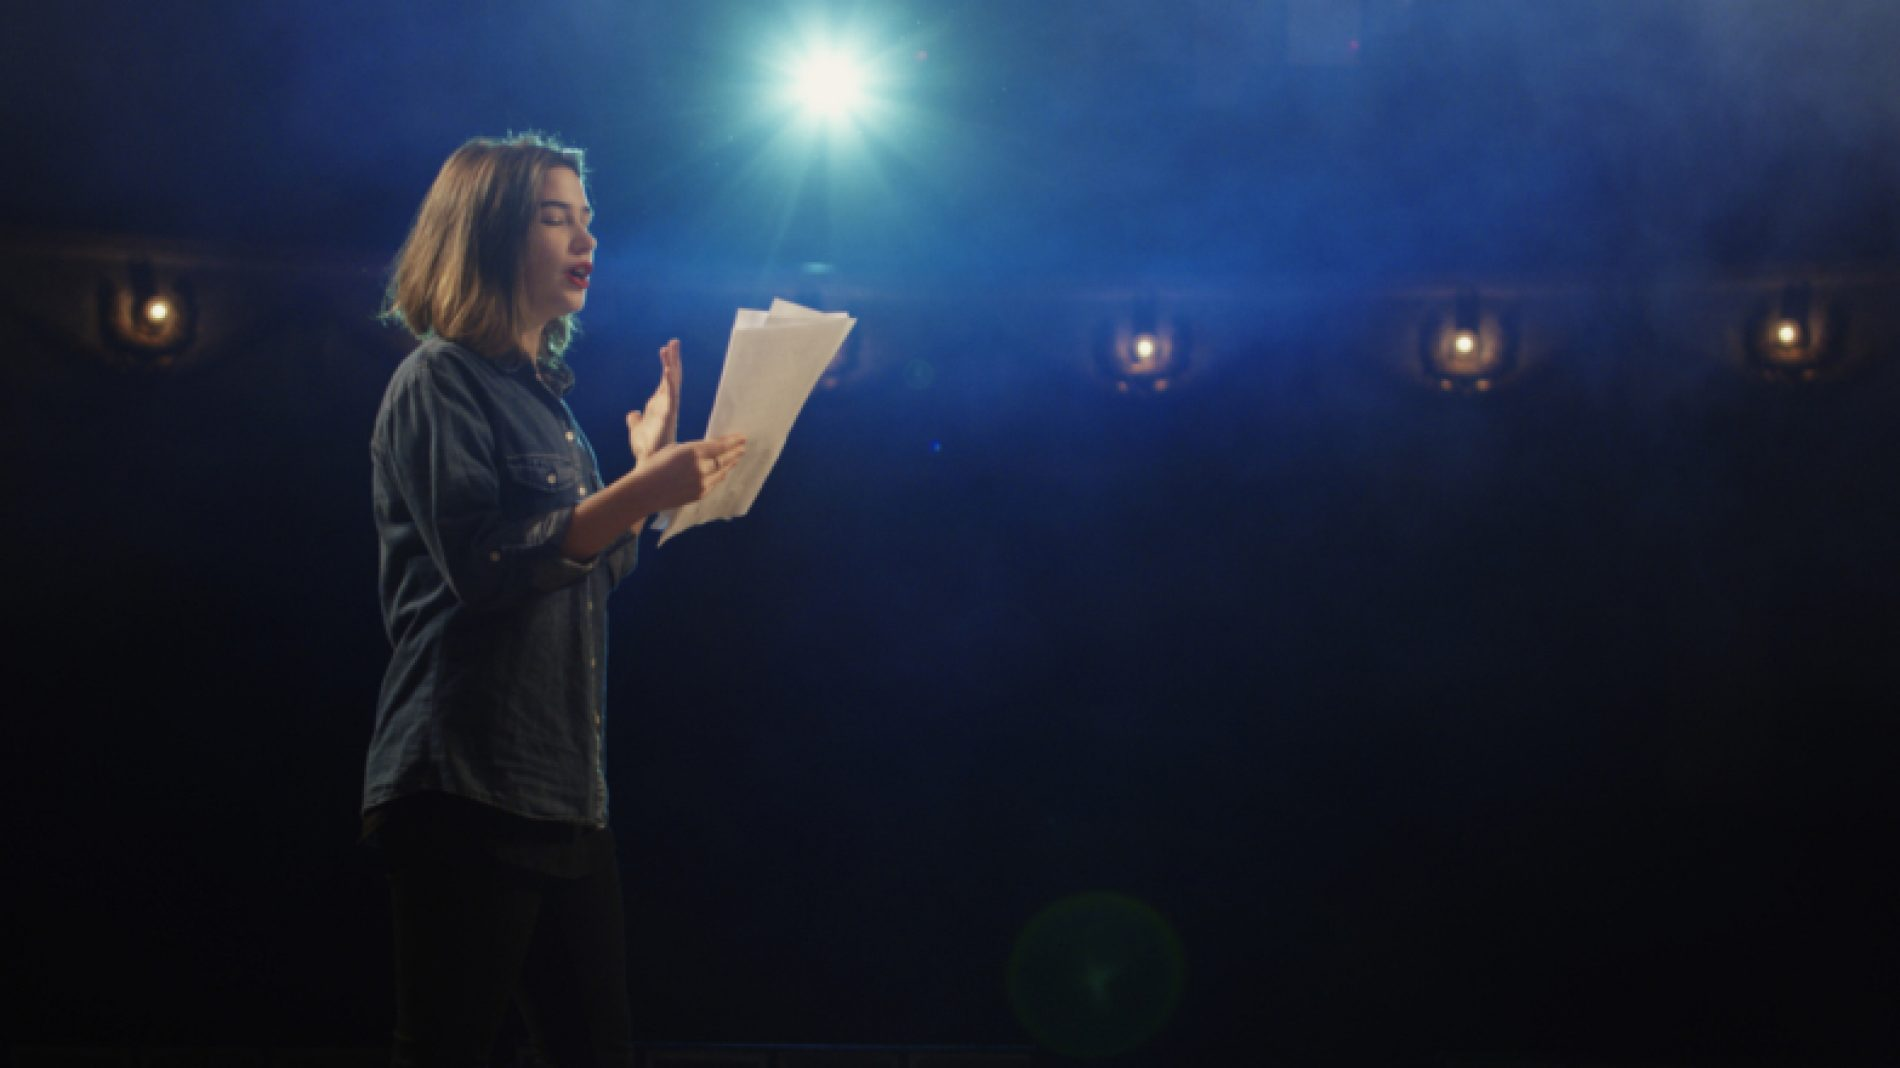 Young-woman-on-stage-with-script-DQzSeV